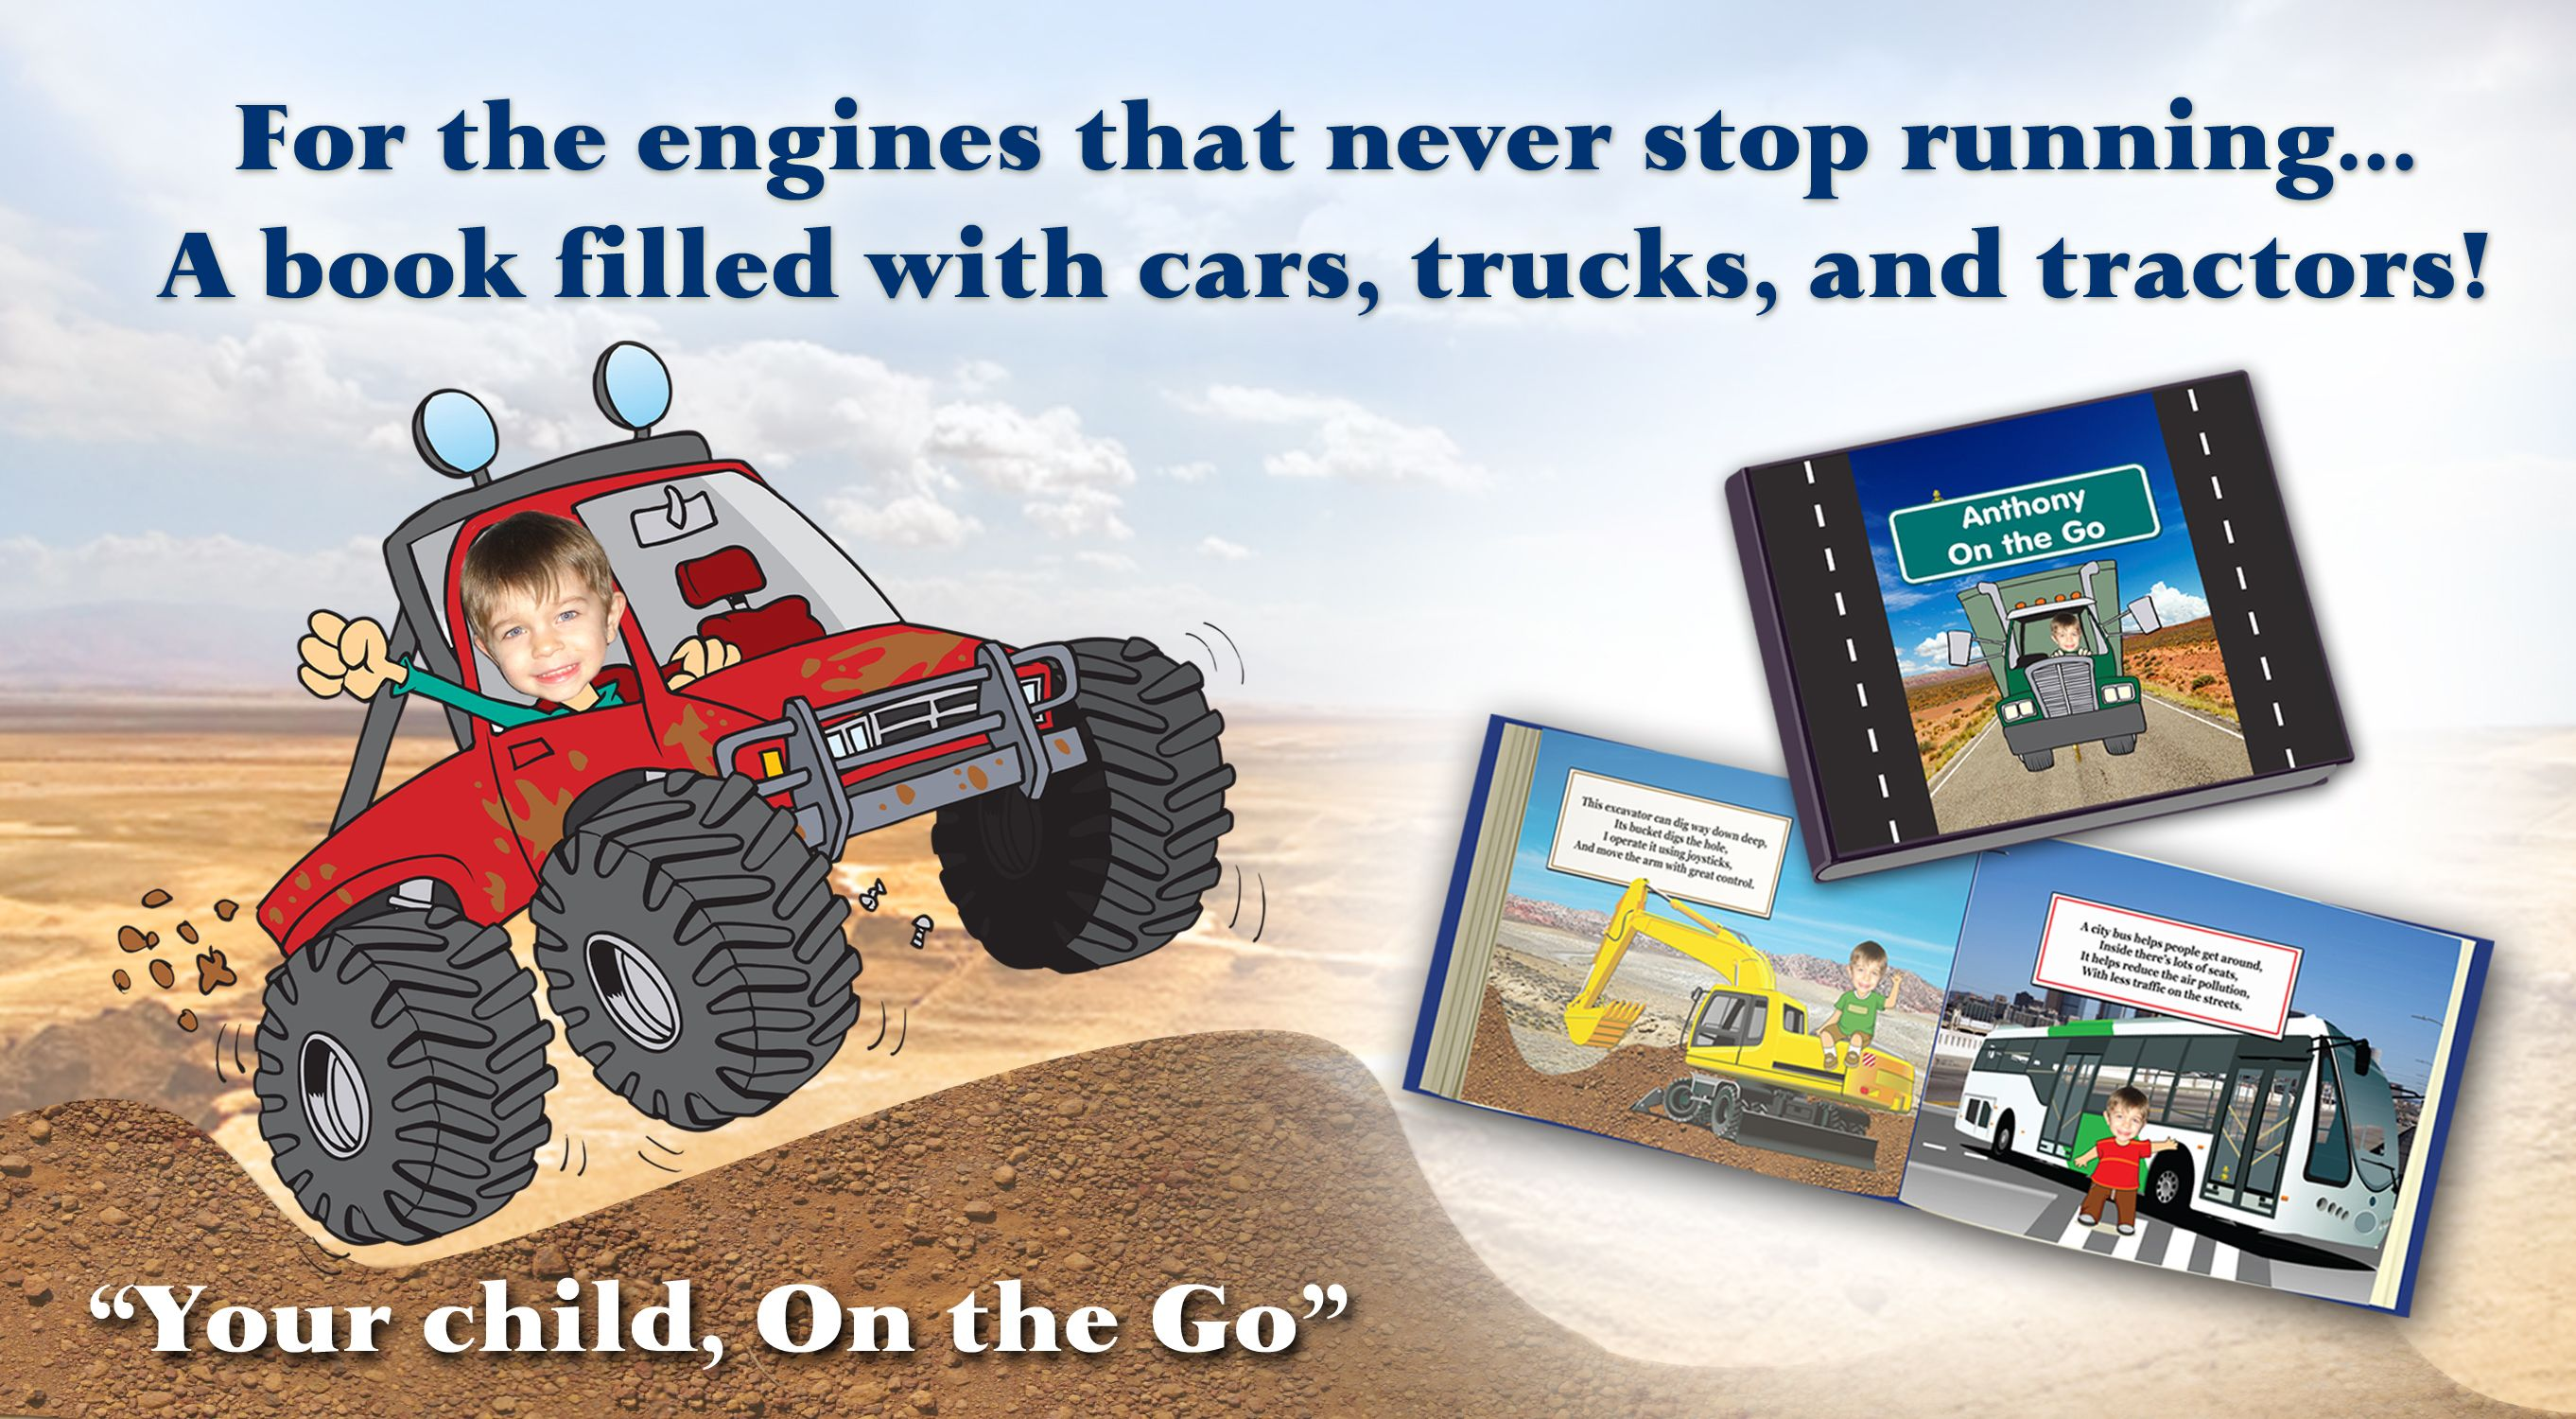 personalized gifts for boys custom books with trucks tractors and more!  sc 1 st  Pinterest & personalized gifts for boys custom books with trucks tractors and ...